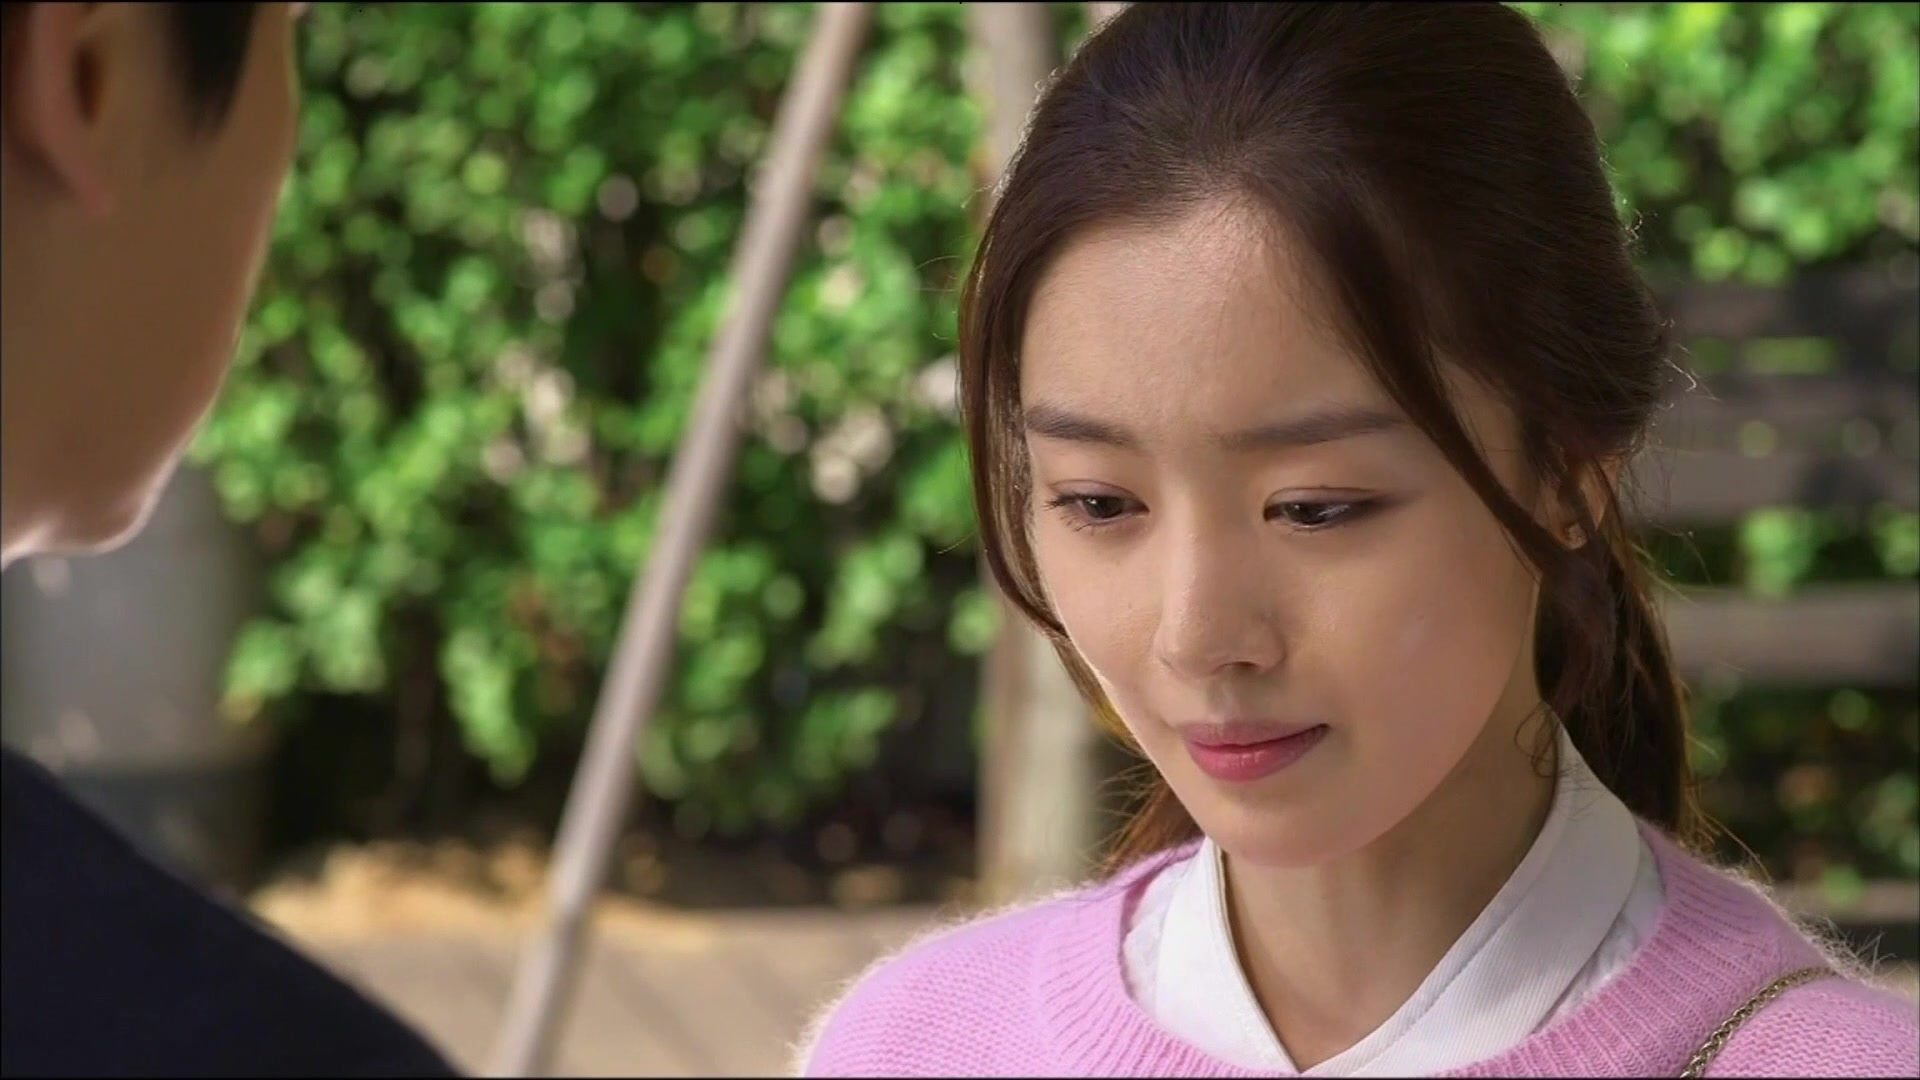 Rosy Lovers Episode 5 - 장미빛...